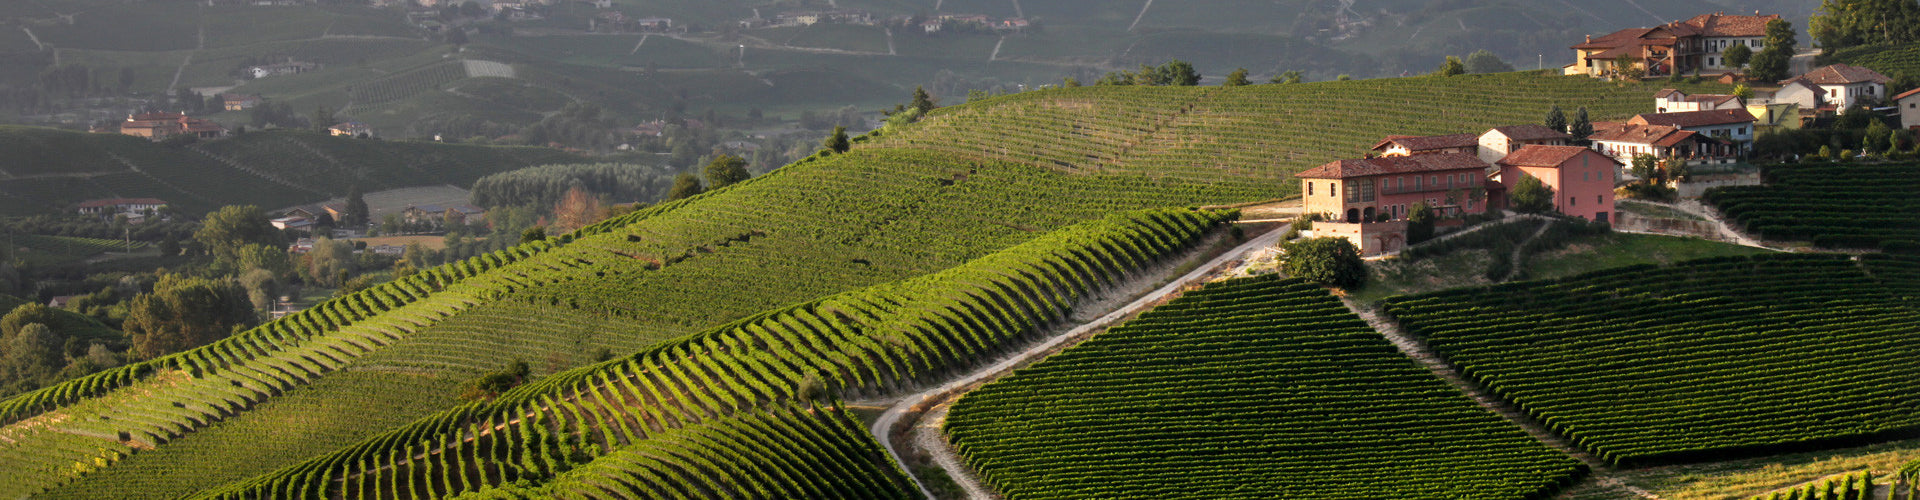 The Prunotto Estate and Vineyards in Piemonte, Italy